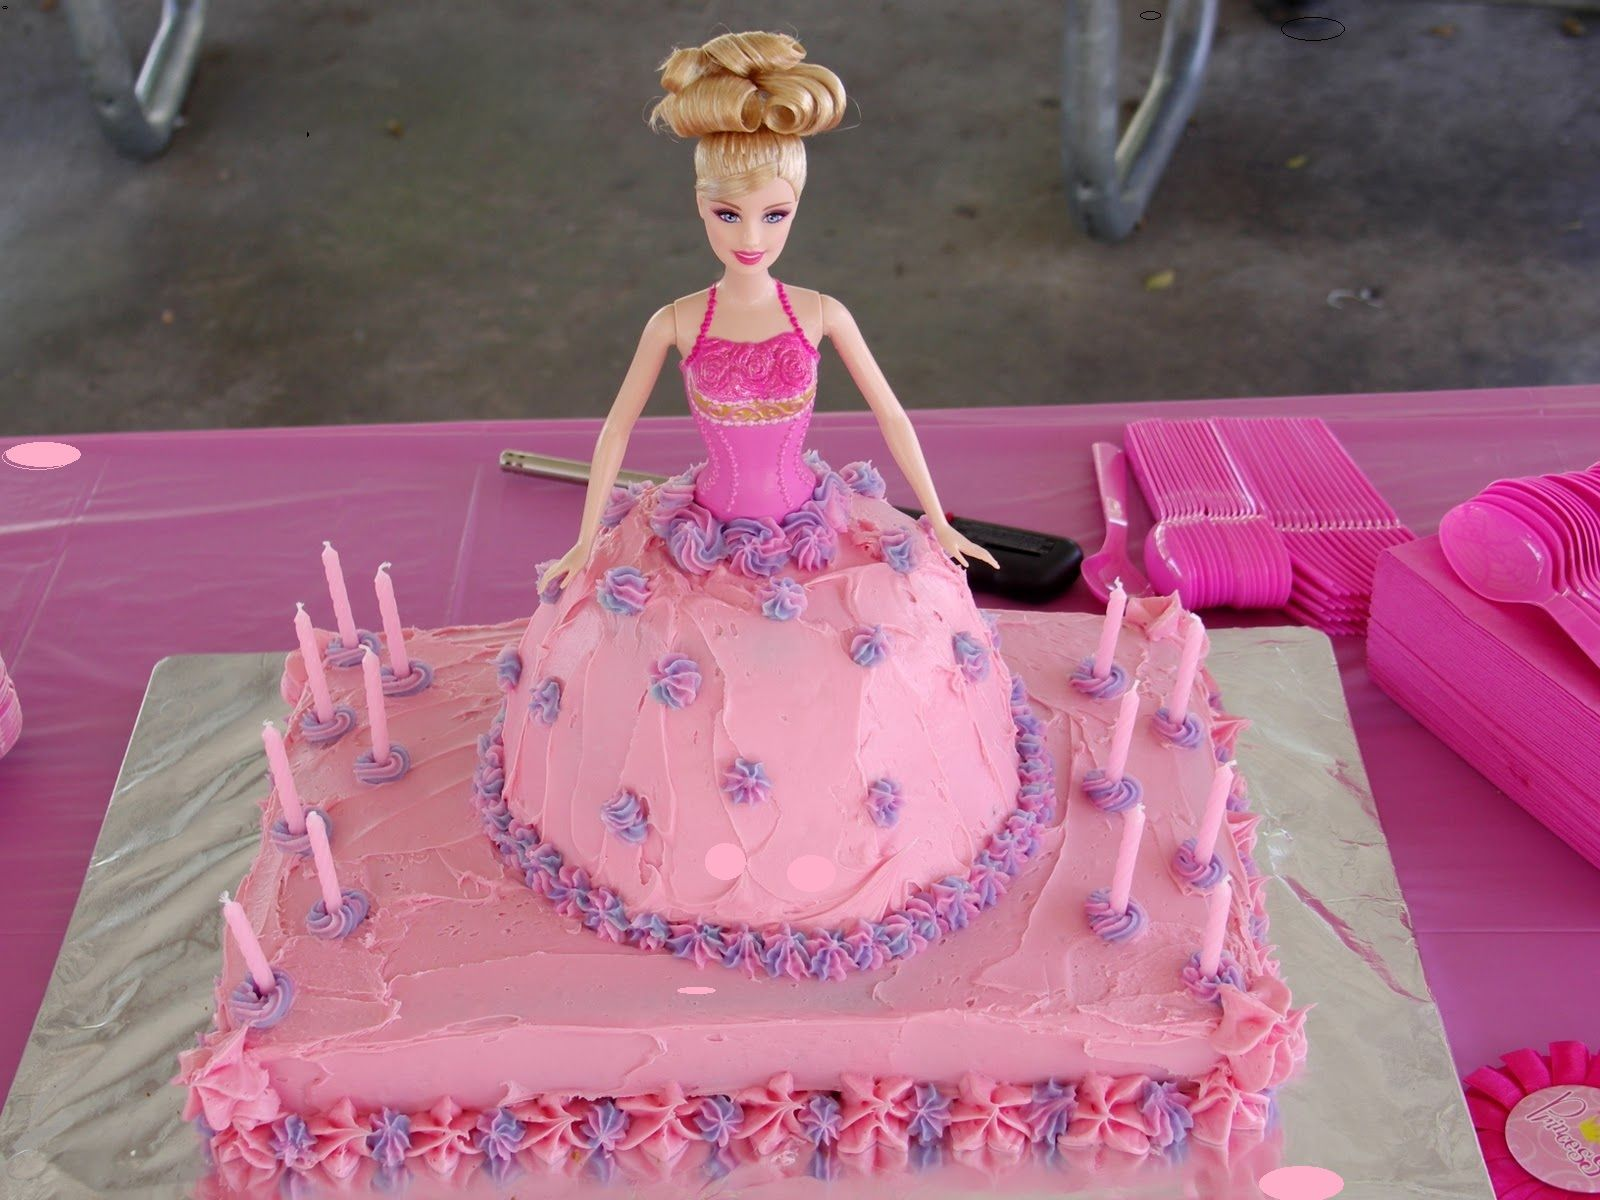 Barbie Doll Cake Images Wallpapers Free Download HD Wallpapers - Birthday cake doll designs